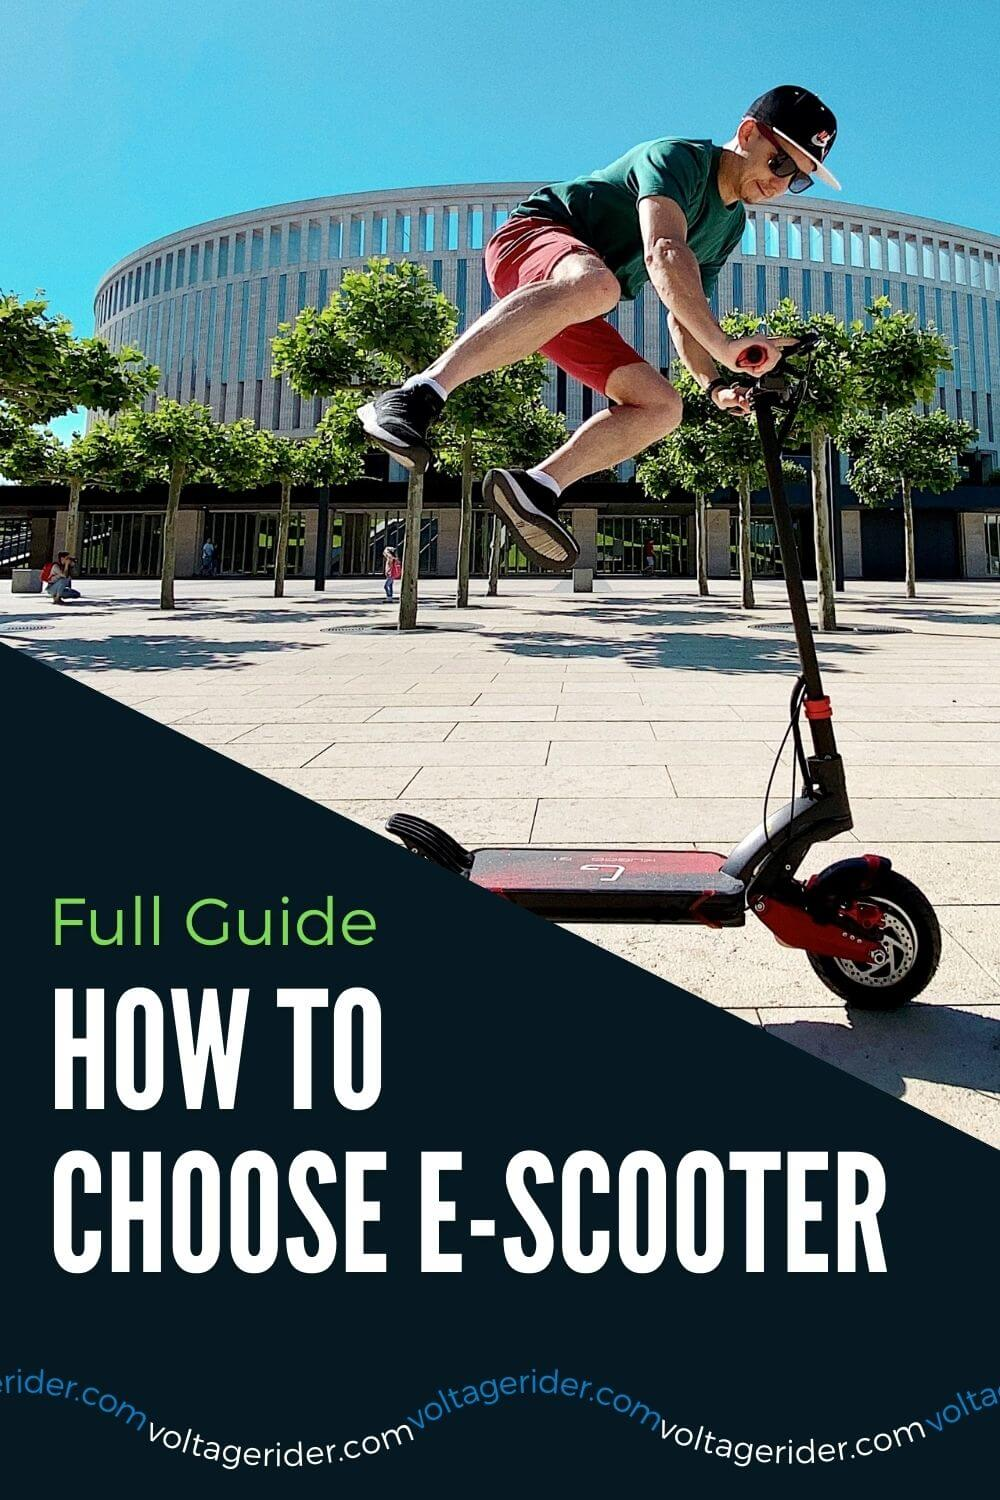 Riding and choosing the right electric scooter